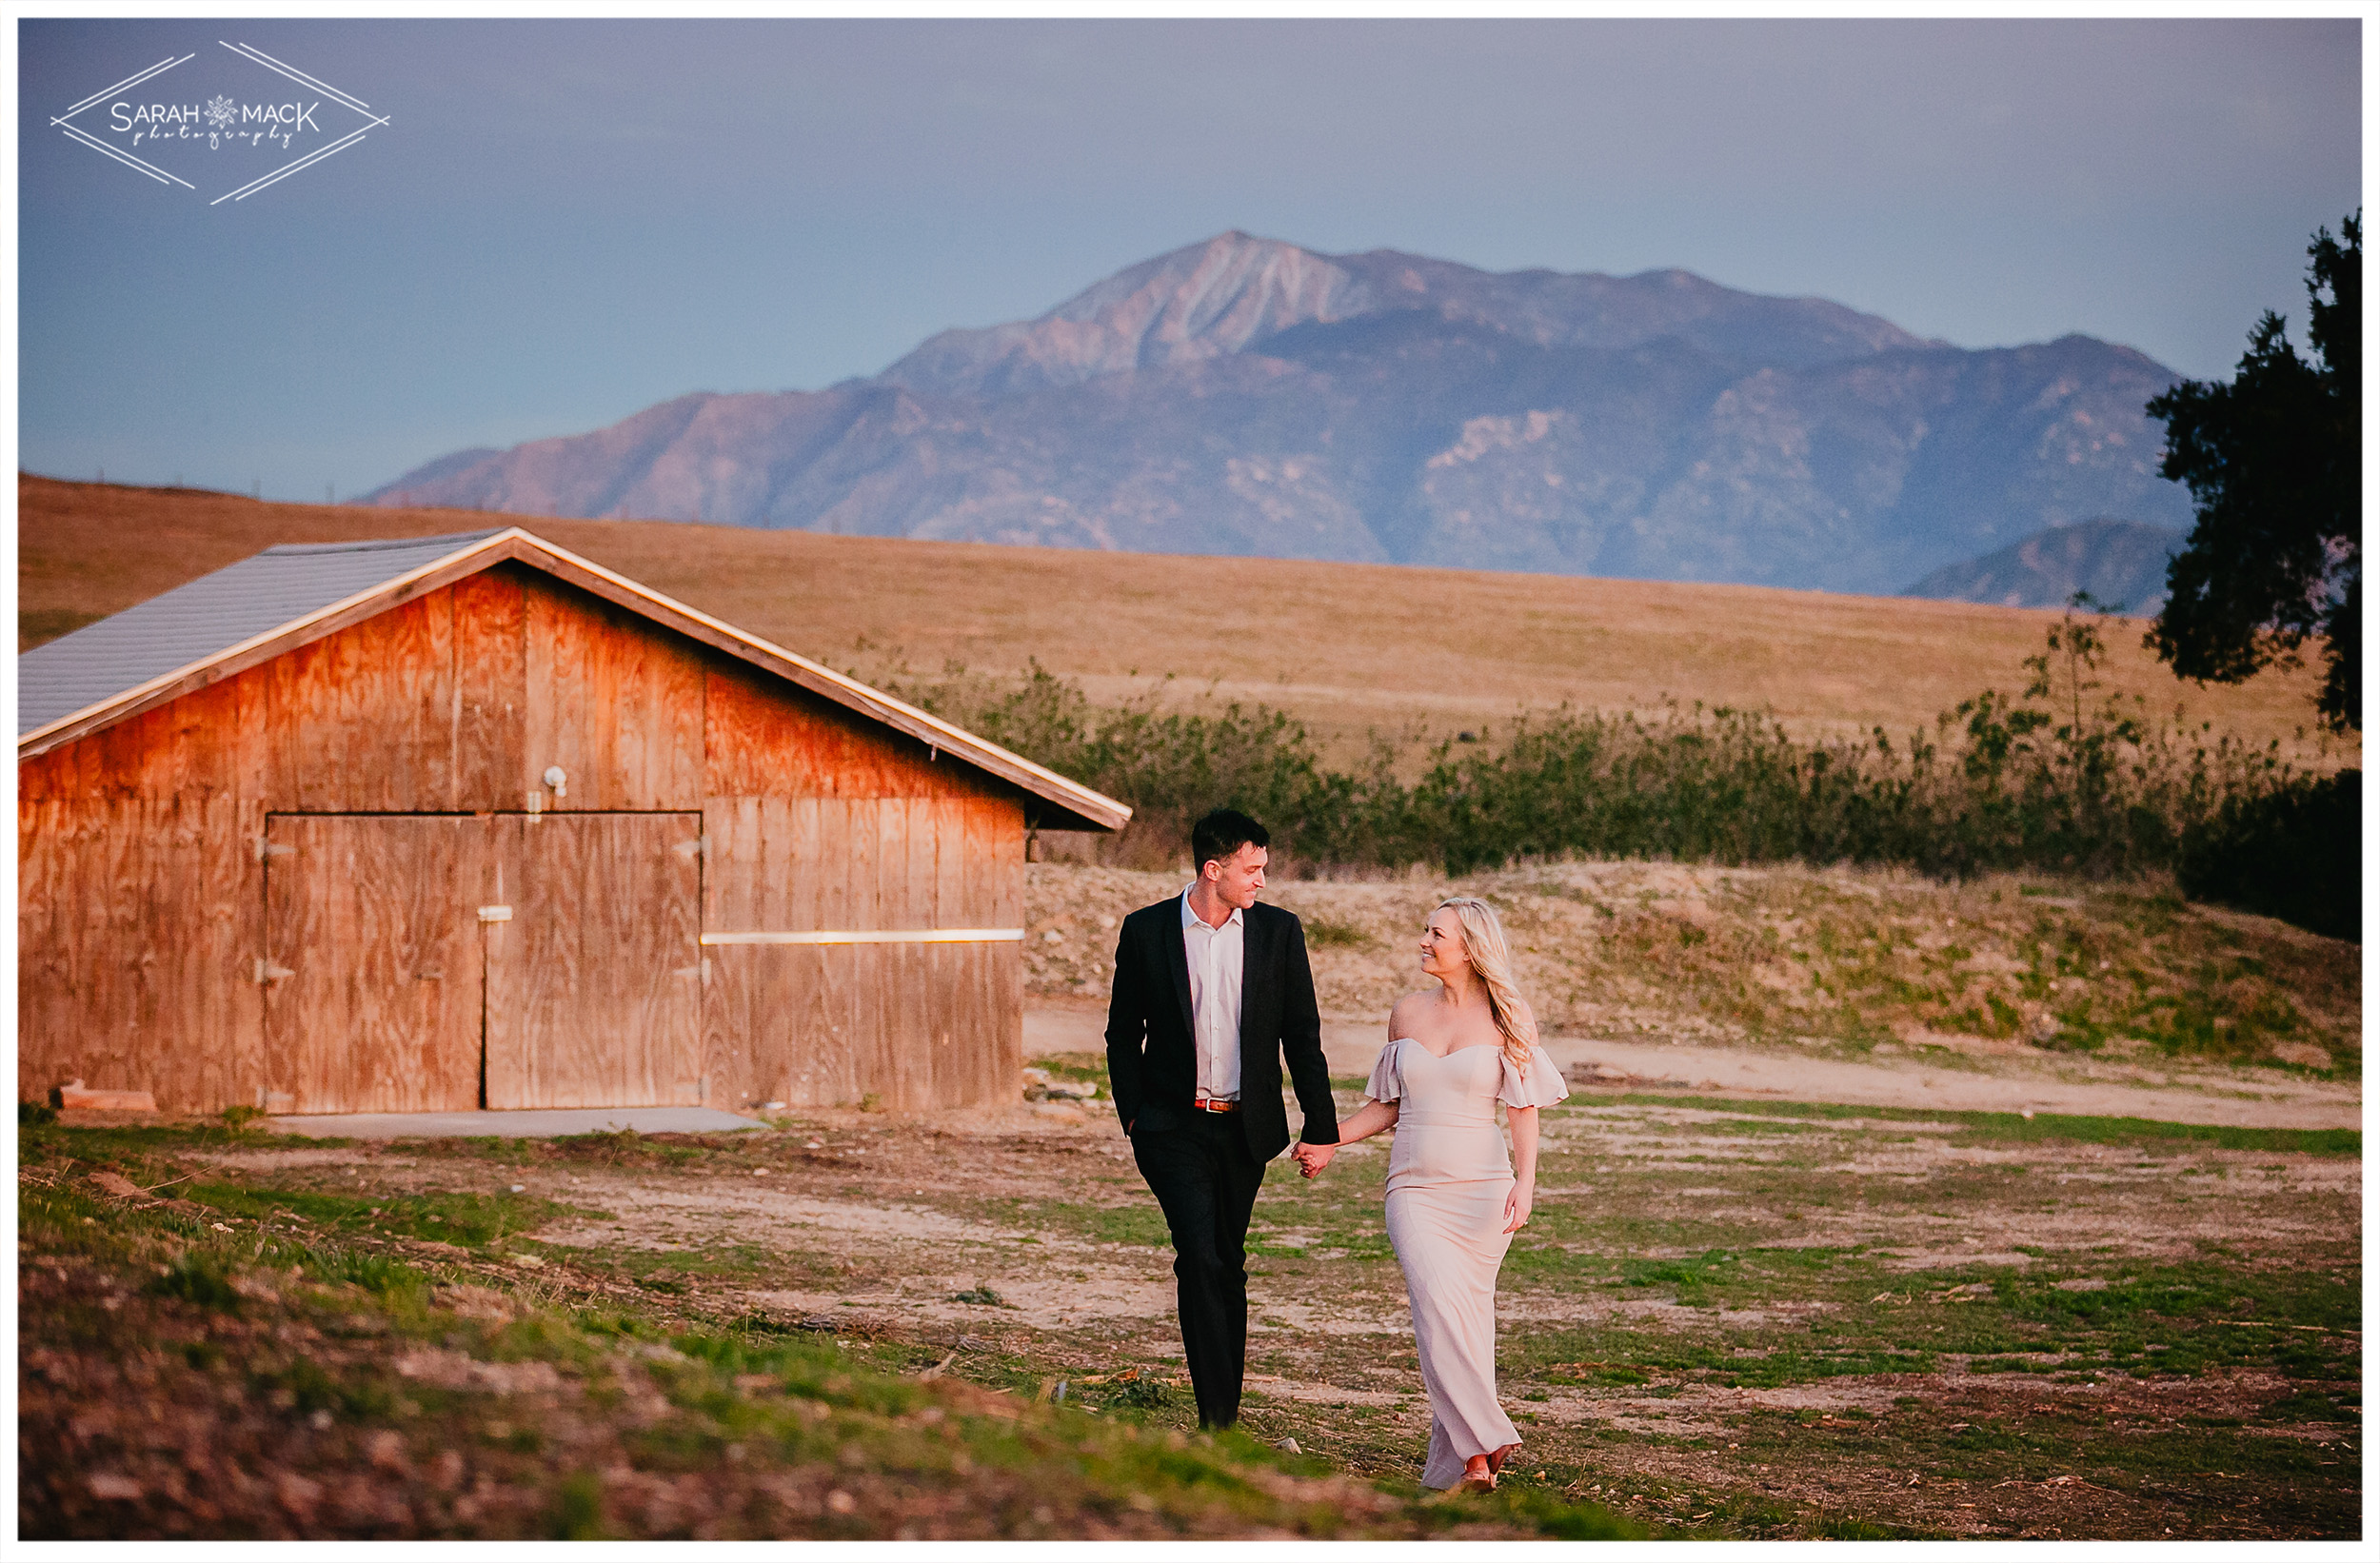 MA-Highland-Springs-Ranch-Engagement-Photography-28.jpg